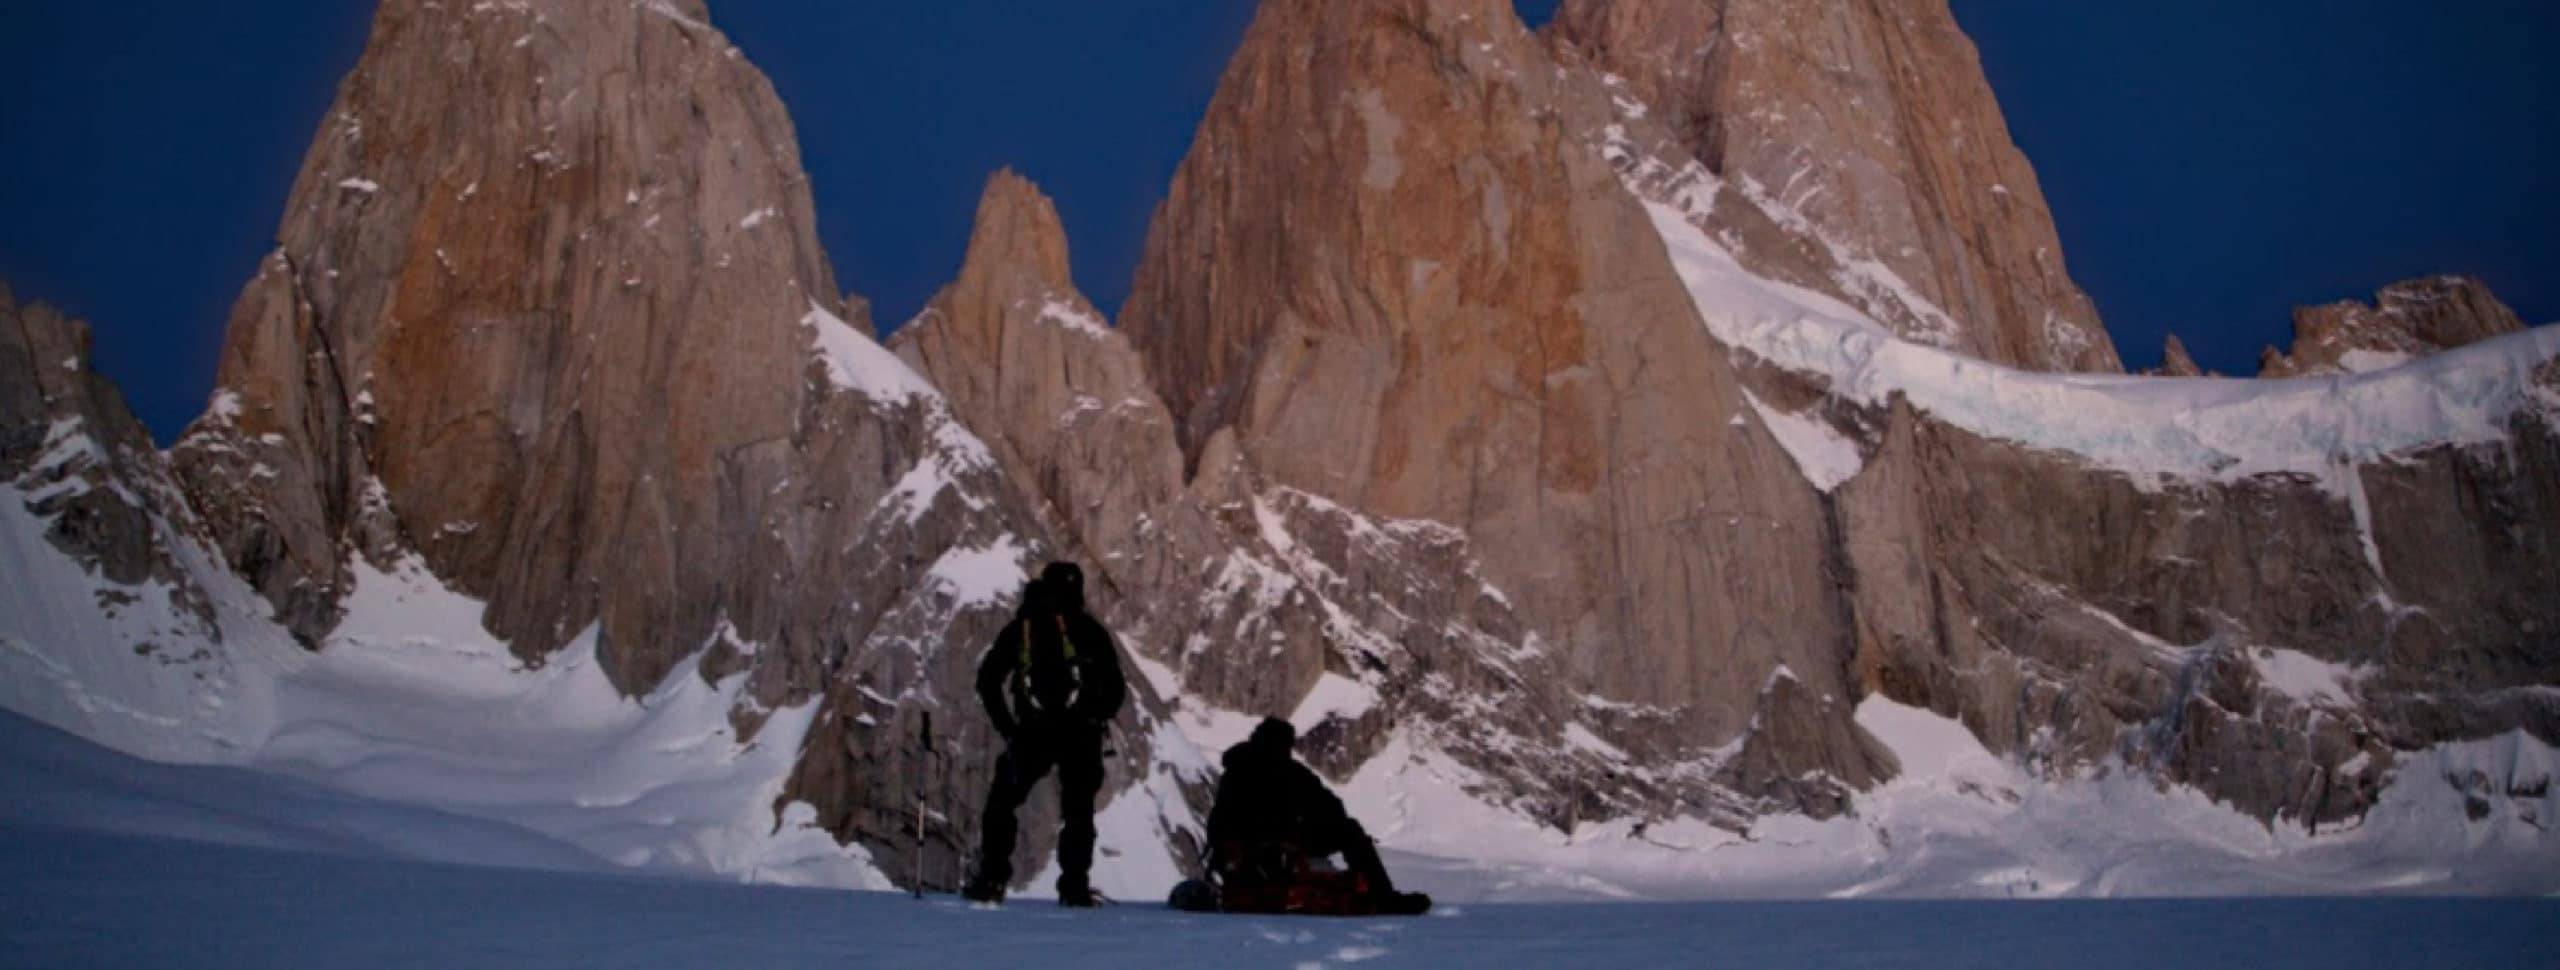 Southern Ice Field Expedition in Patagonia